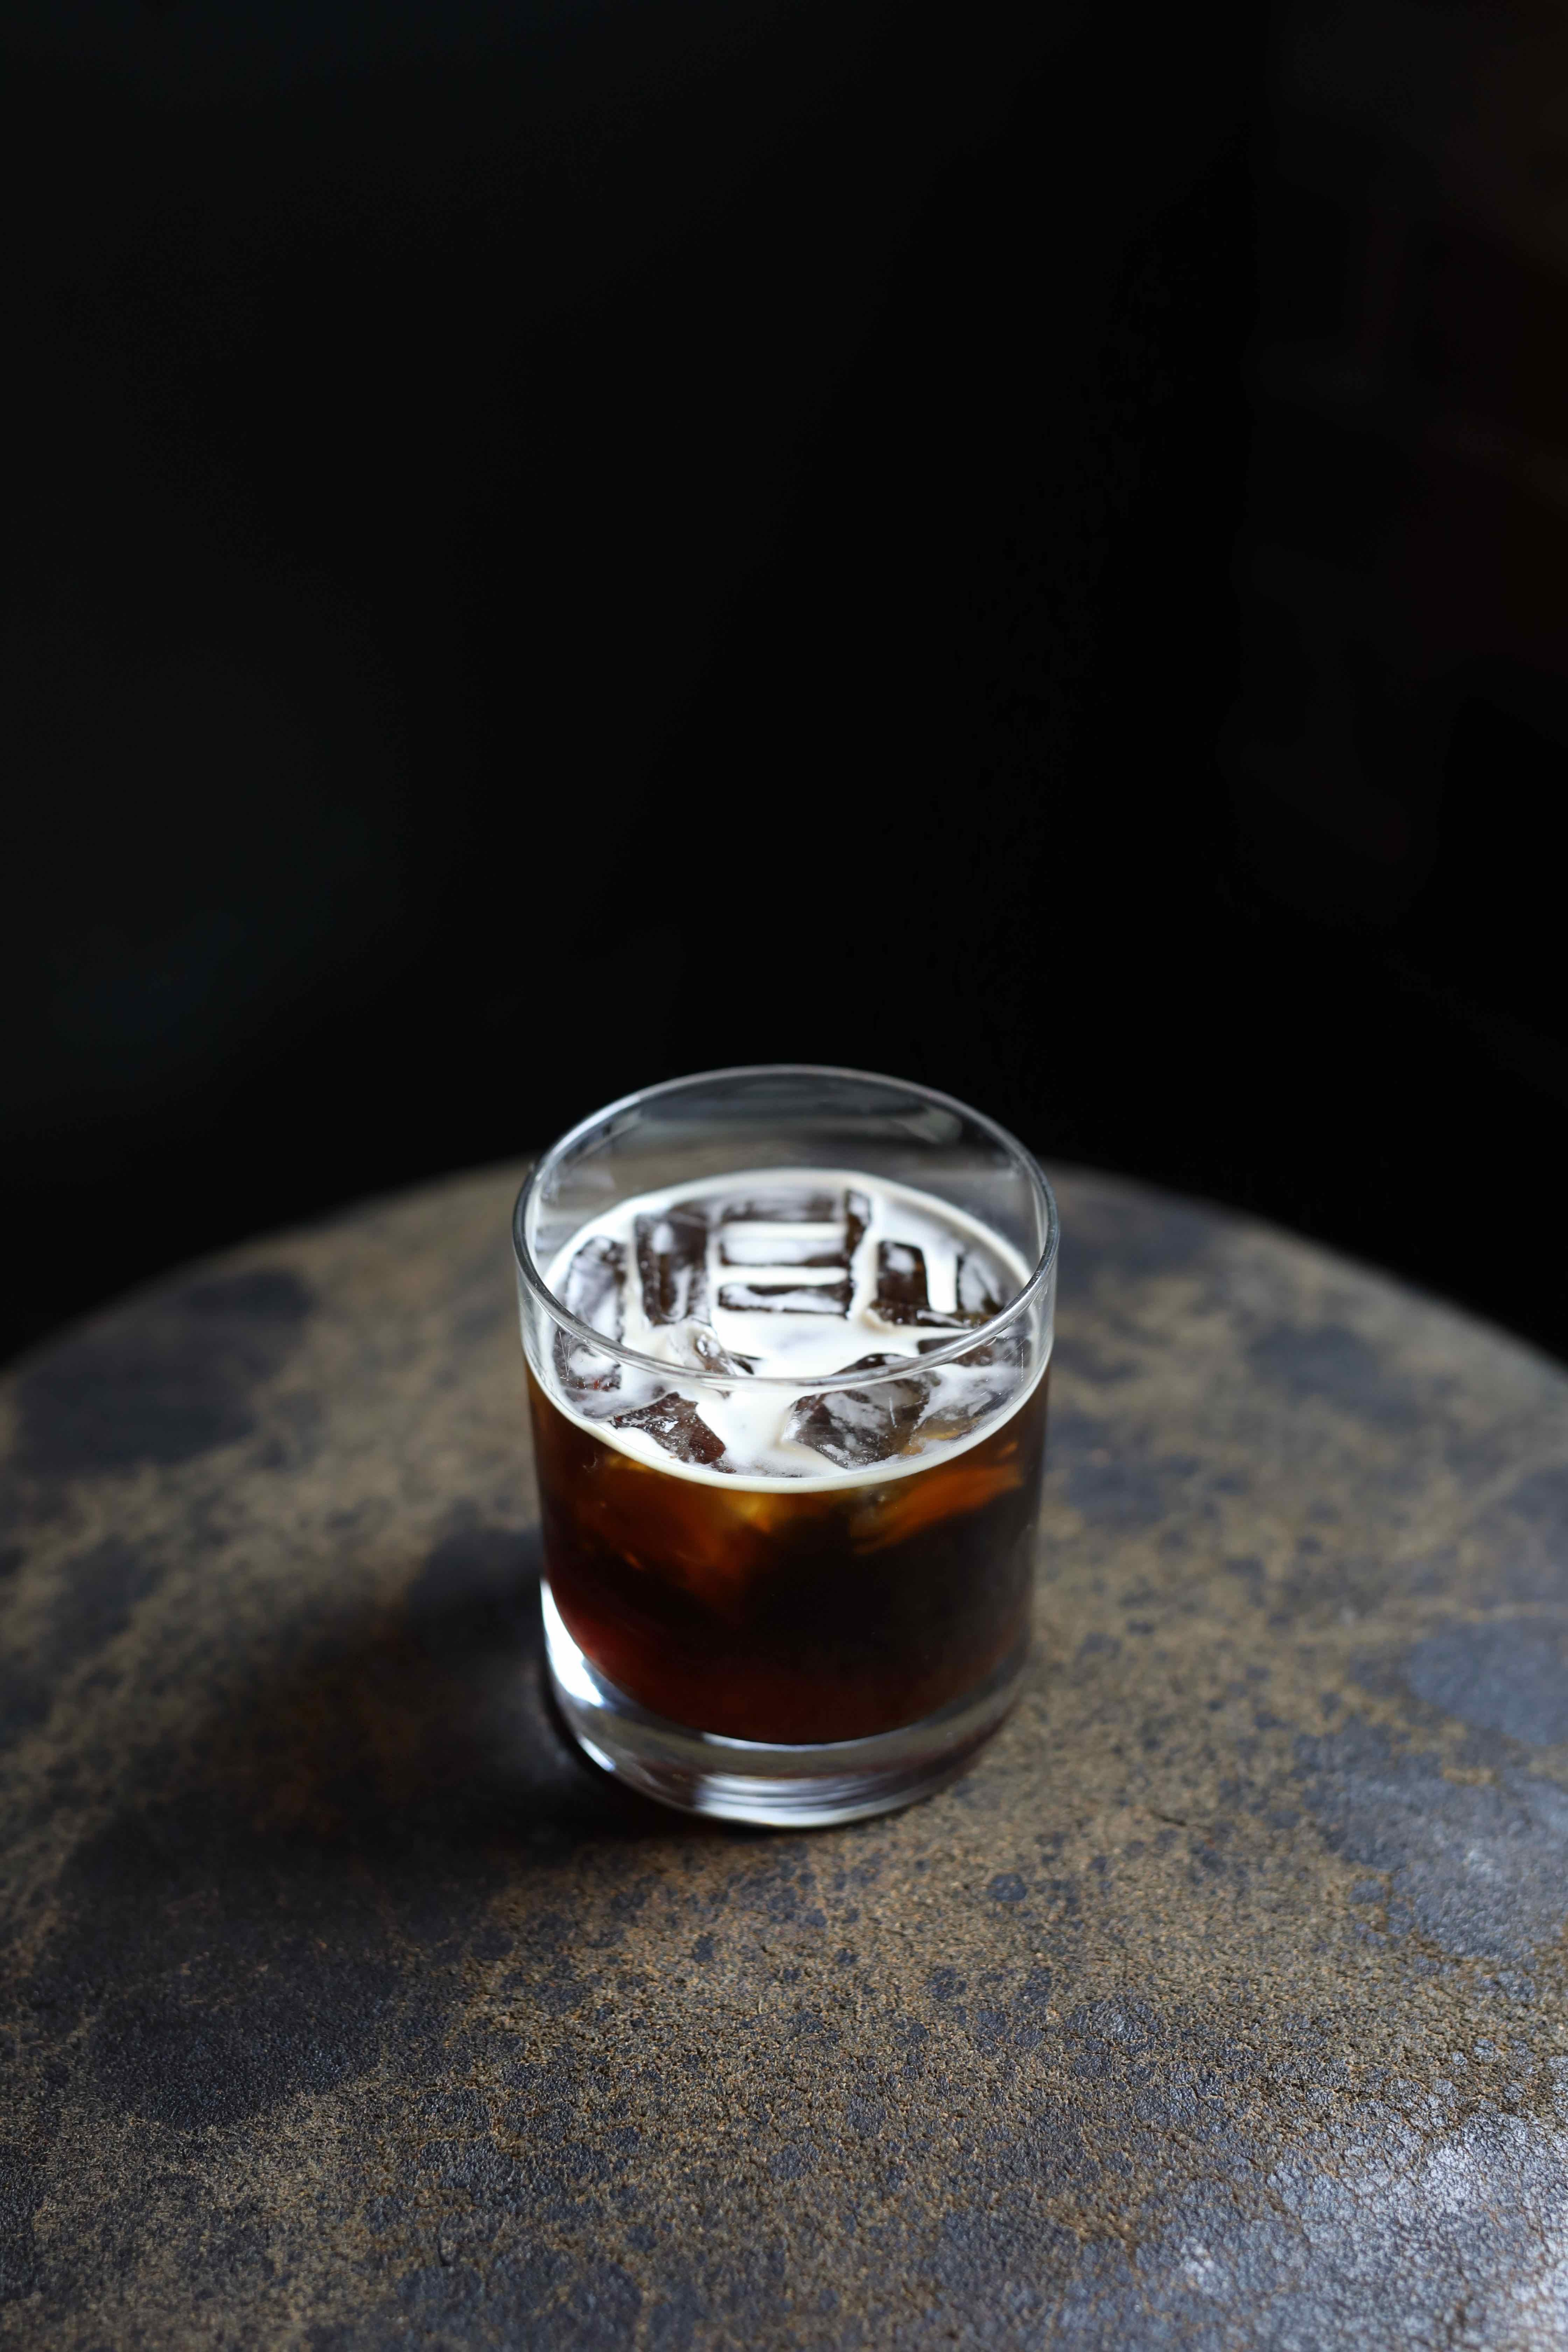 glass of iced coffee placed on brown stone